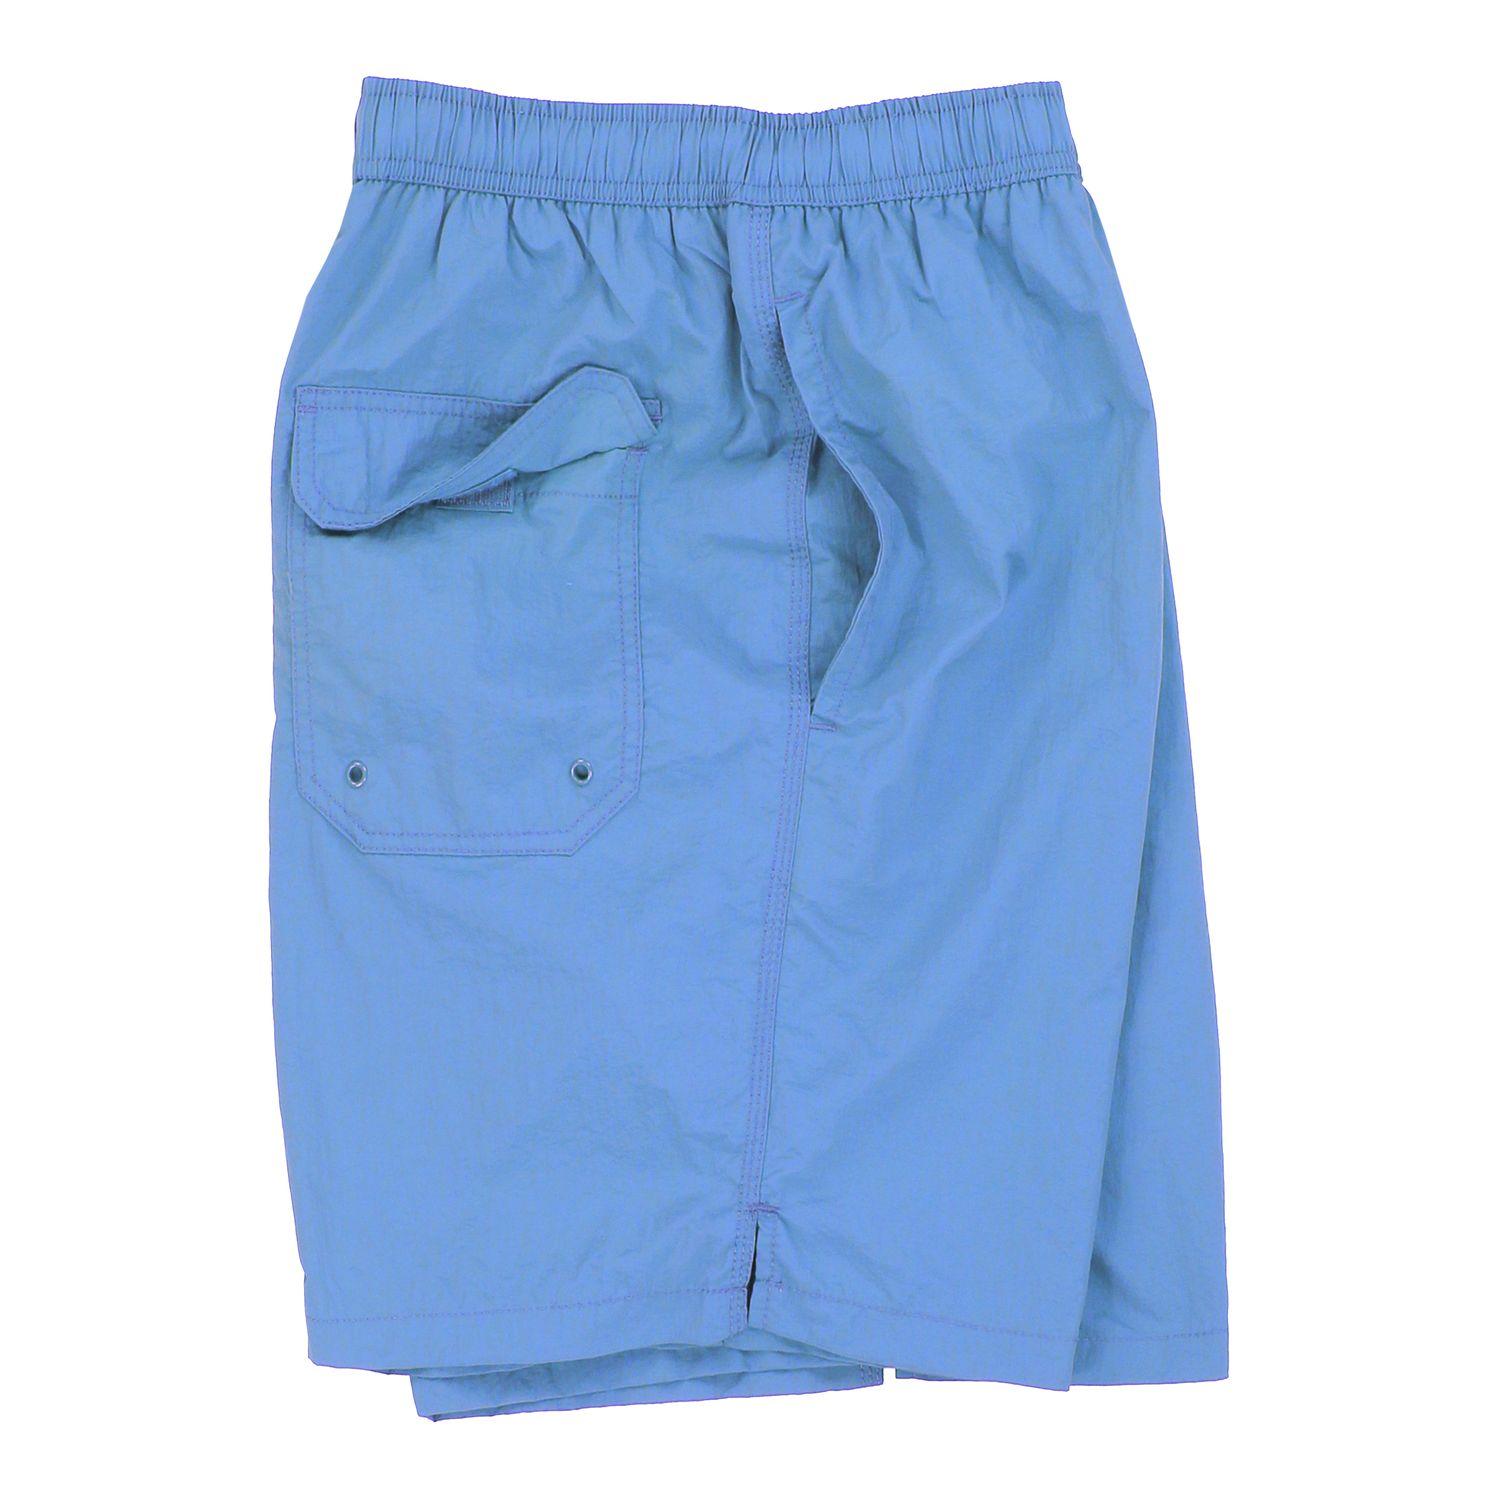 Detail Image to Swimshorts by North 56°4 turquoise in oversizes up to 8XL